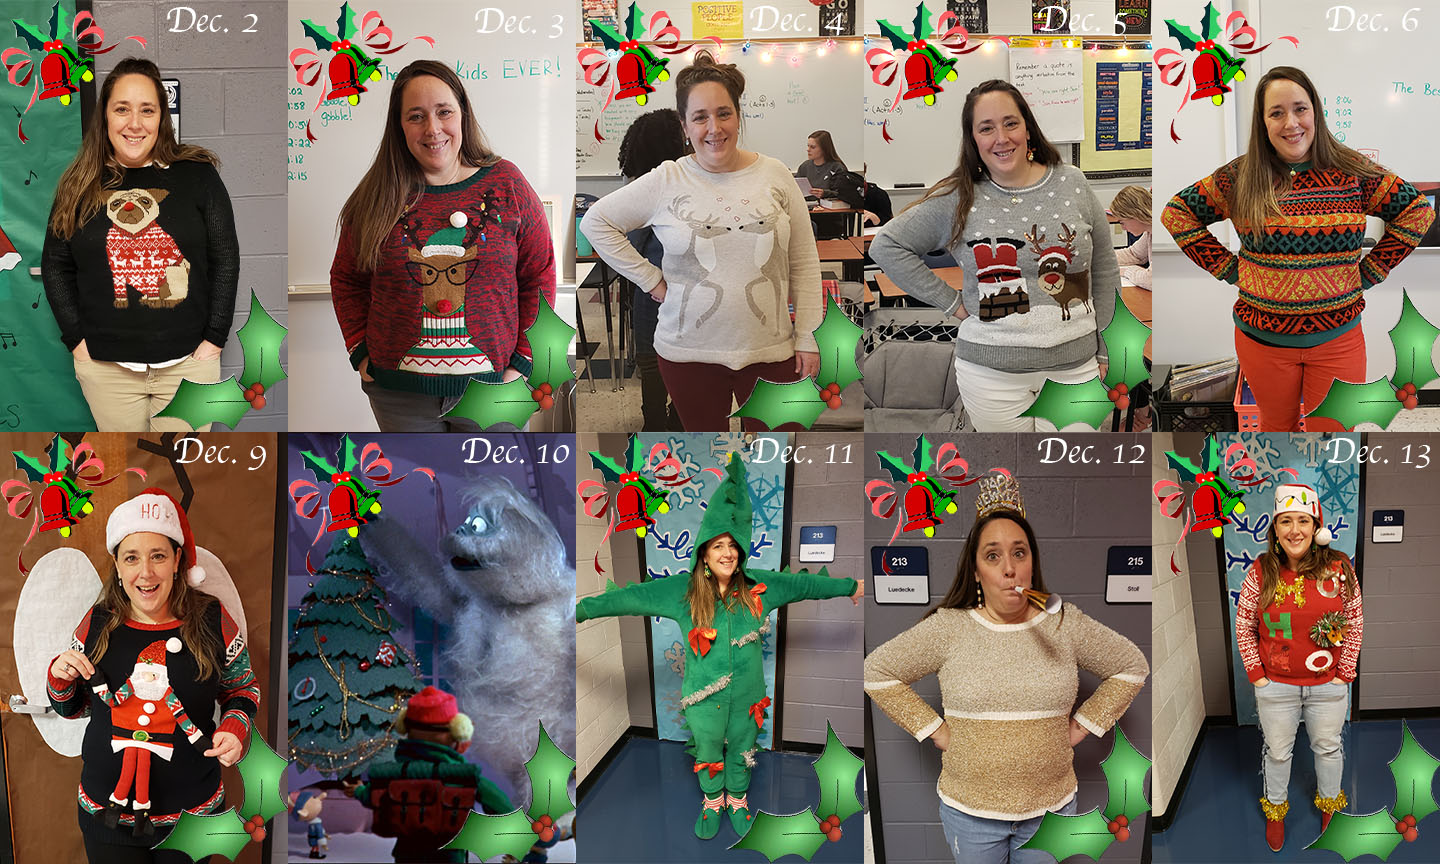 Mrs. T-O wore a fun and funky Christmas sweater every day of December until winter break. On Dec. 10, Mrs. T-O was out so Bumble, the abominable snowman from Rudolph, is shown on that day for her father who used to imitate Bumble as a kid to make her laugh.